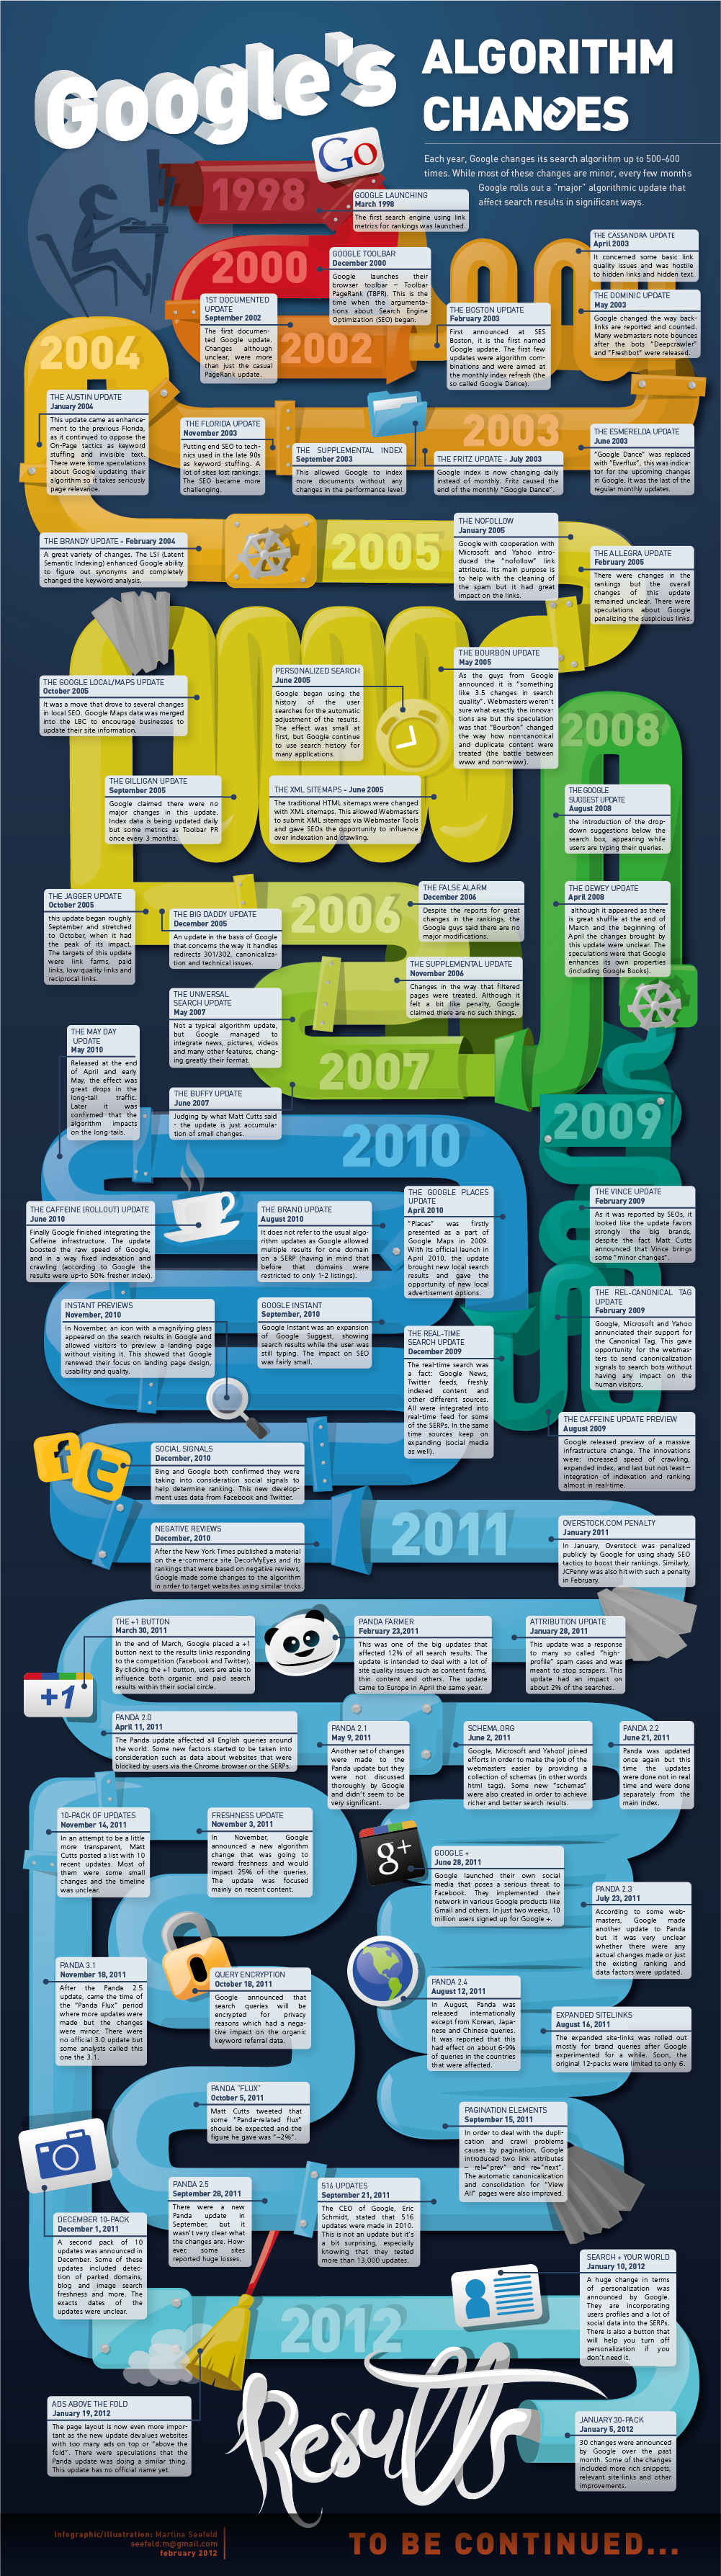 Google Algorithm Changes Infographic